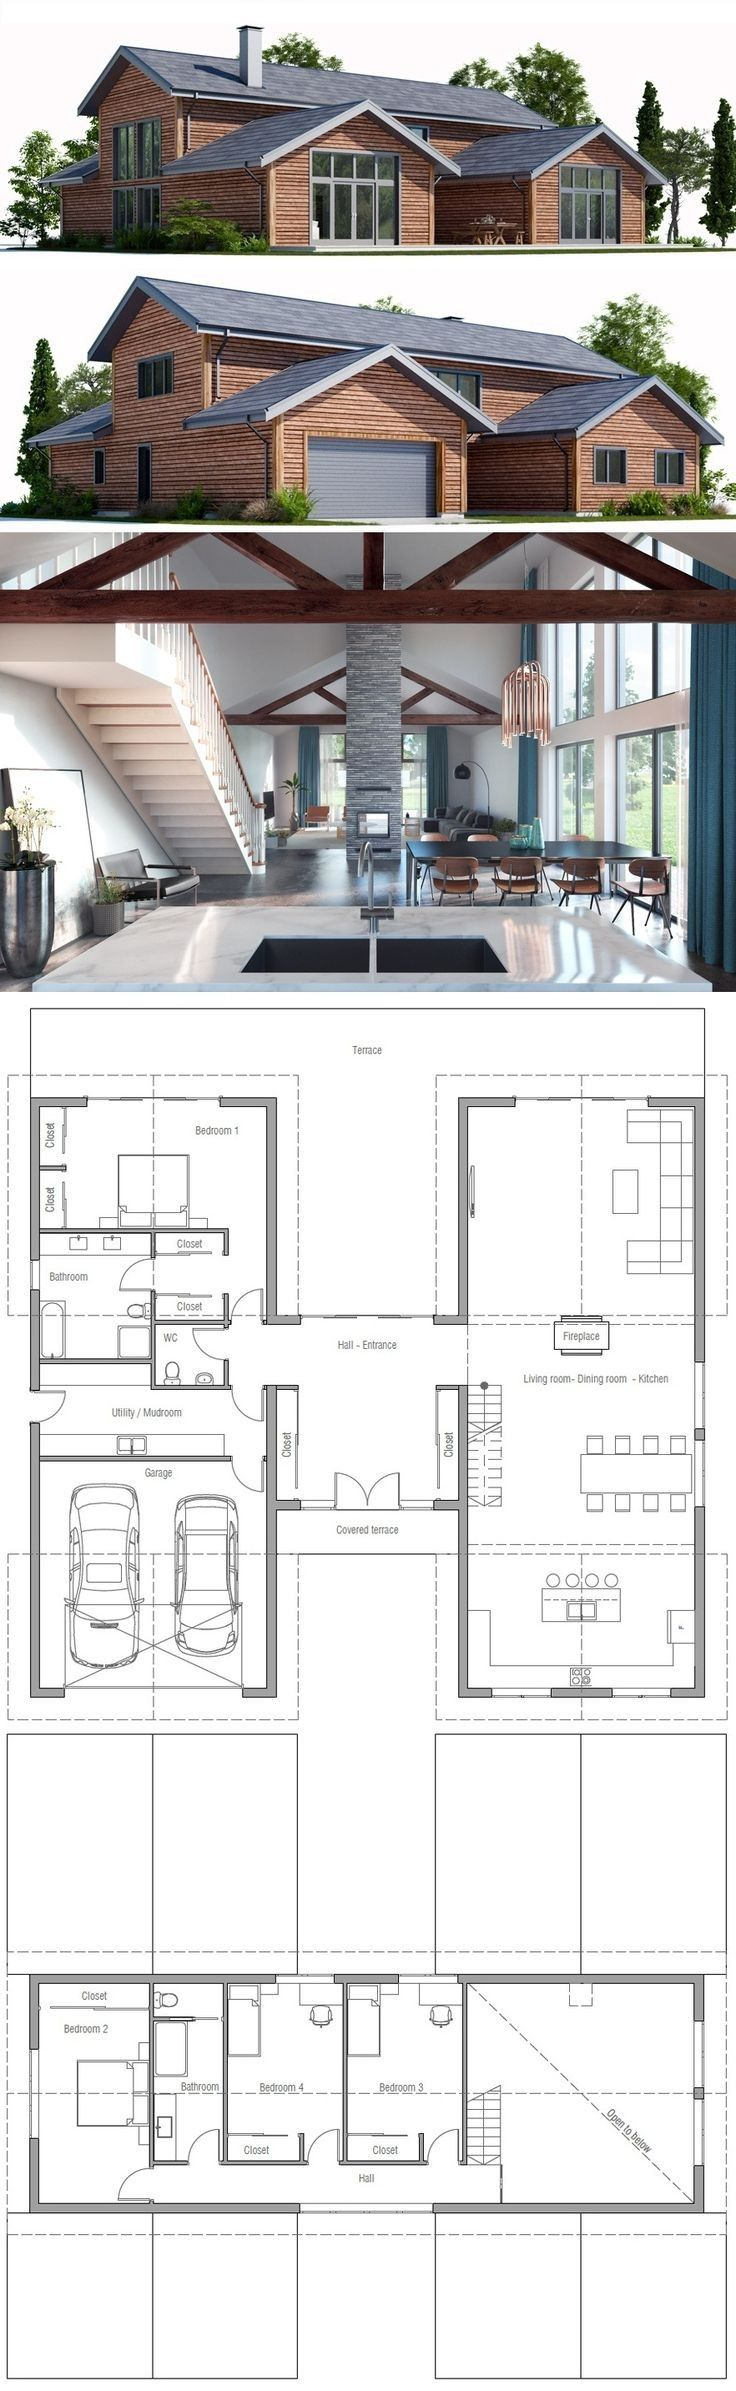 23 Unique 40 Foot Shipping Container Home Floor Plans 40 Foot Shipping Container Container House Plans Shipping Container House Plans Building A Container Home